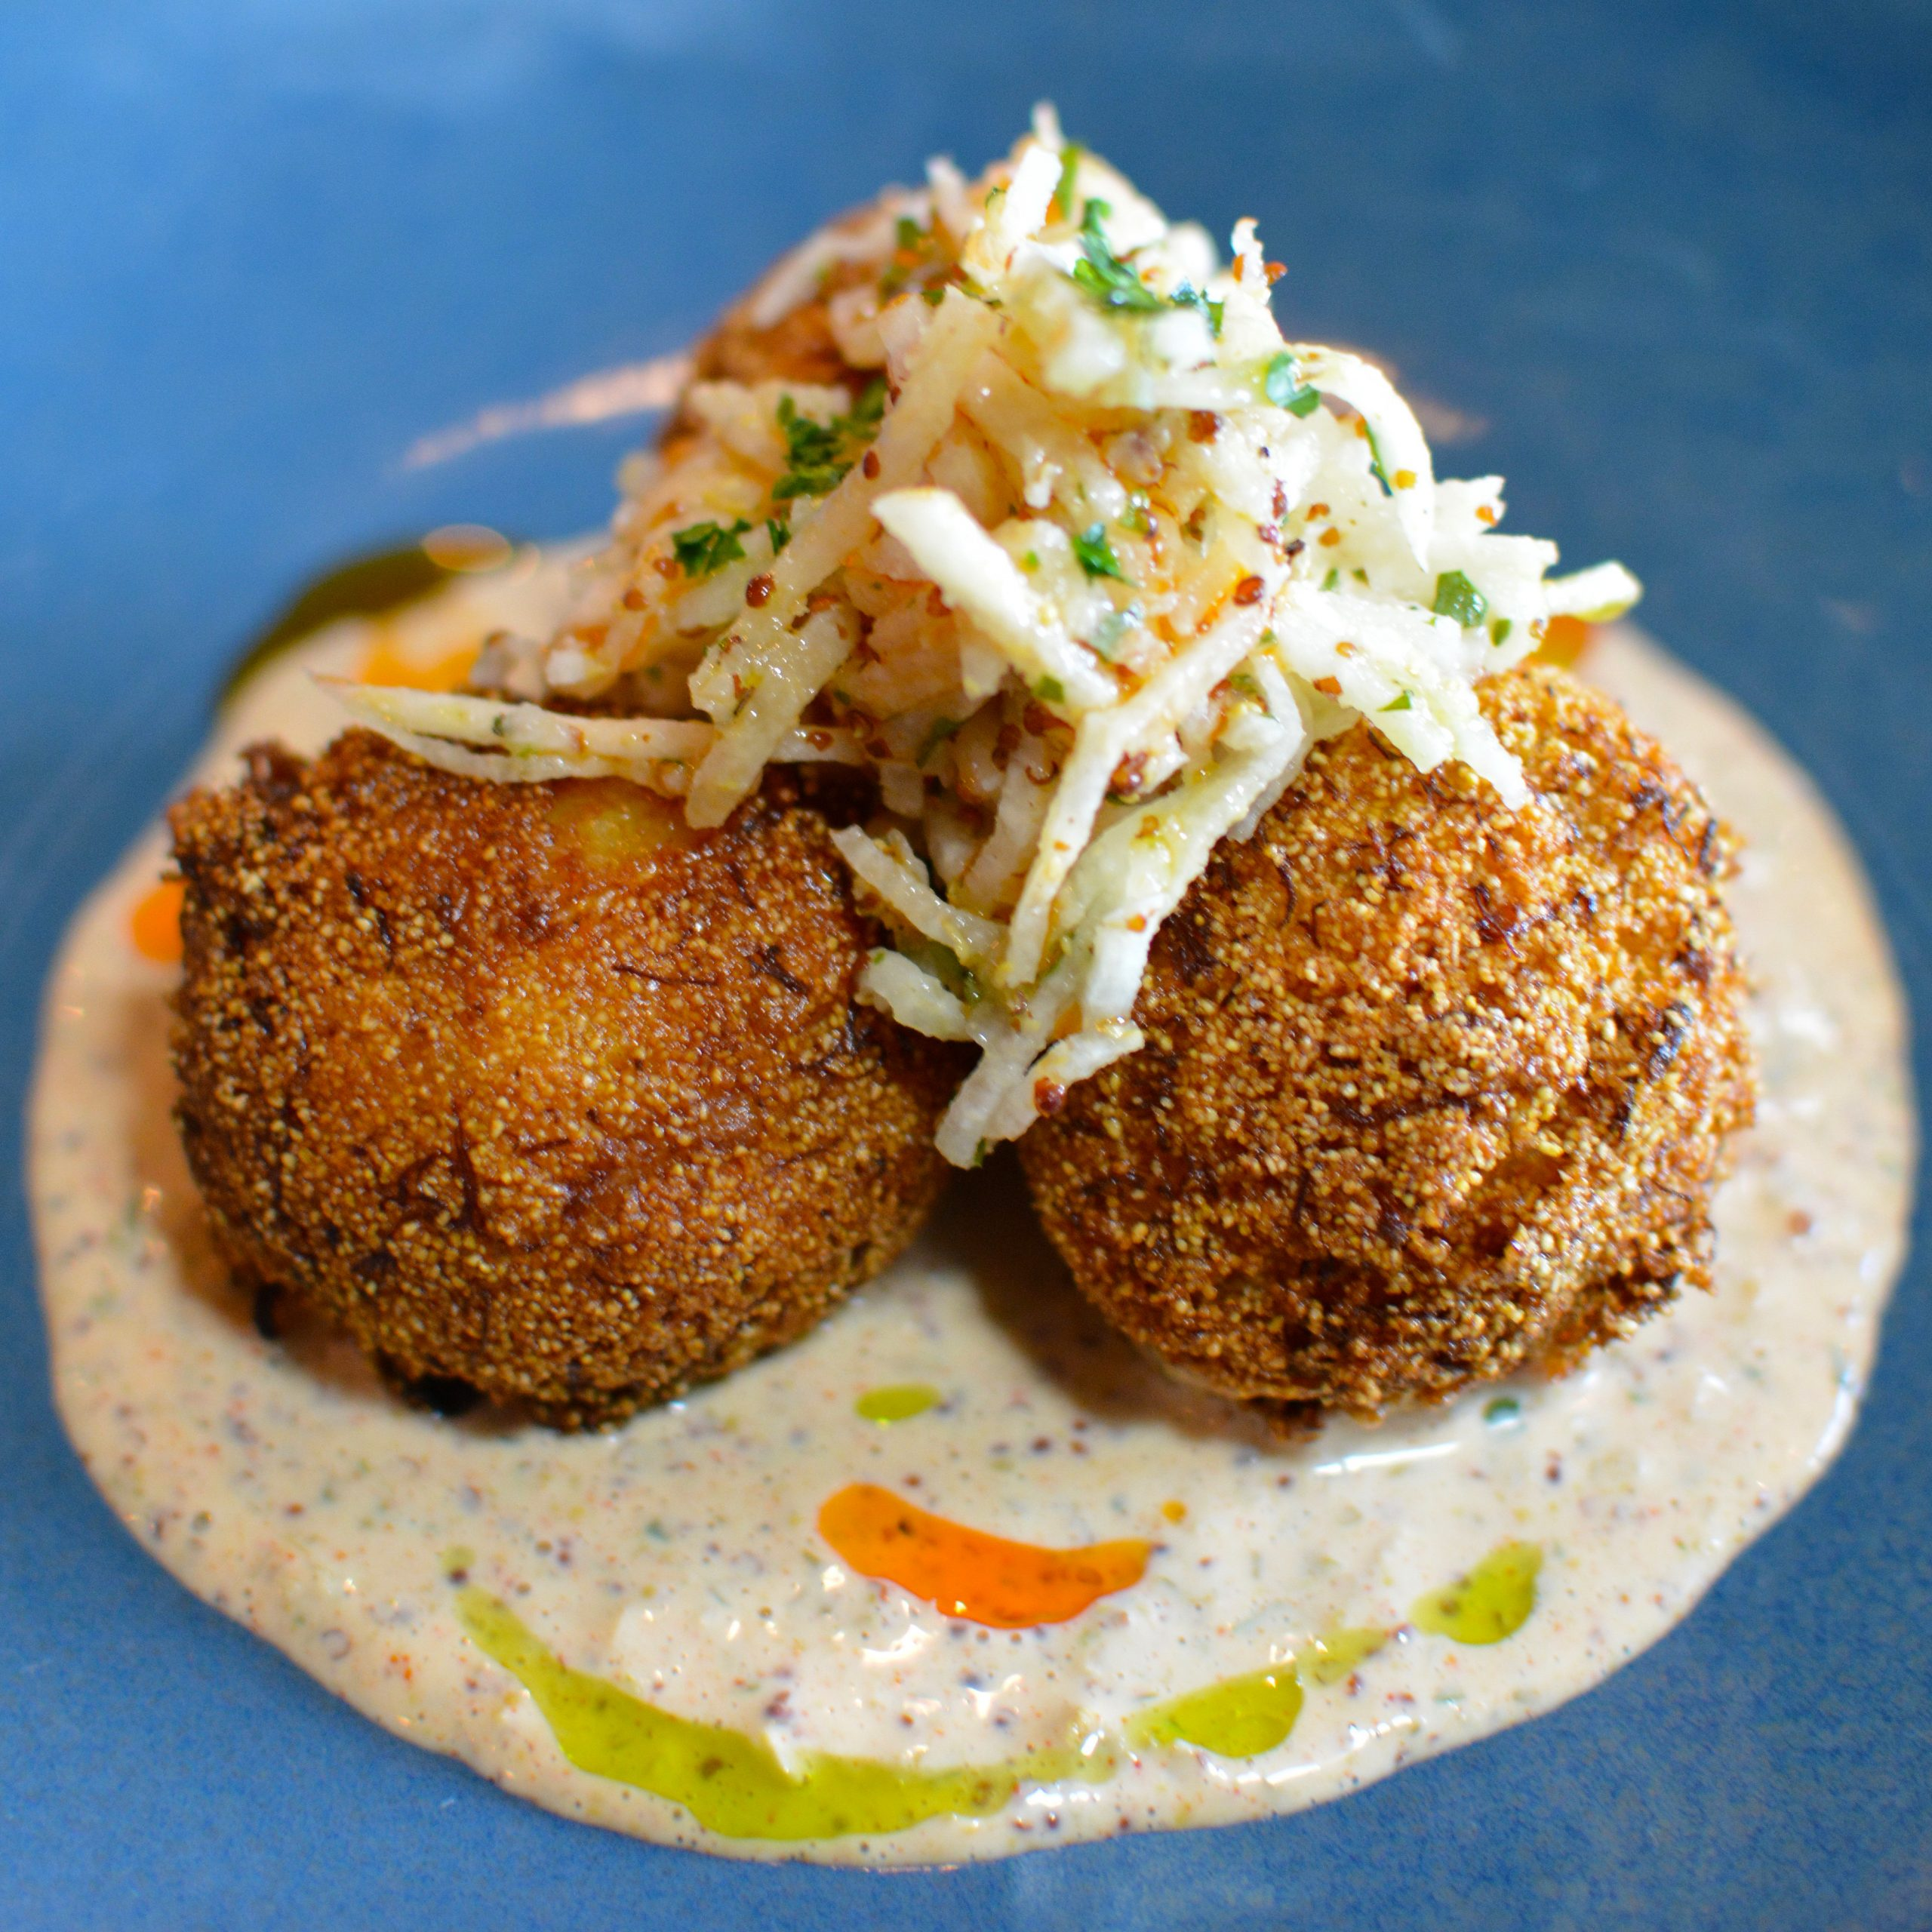 Hush Puppies topped with slaw